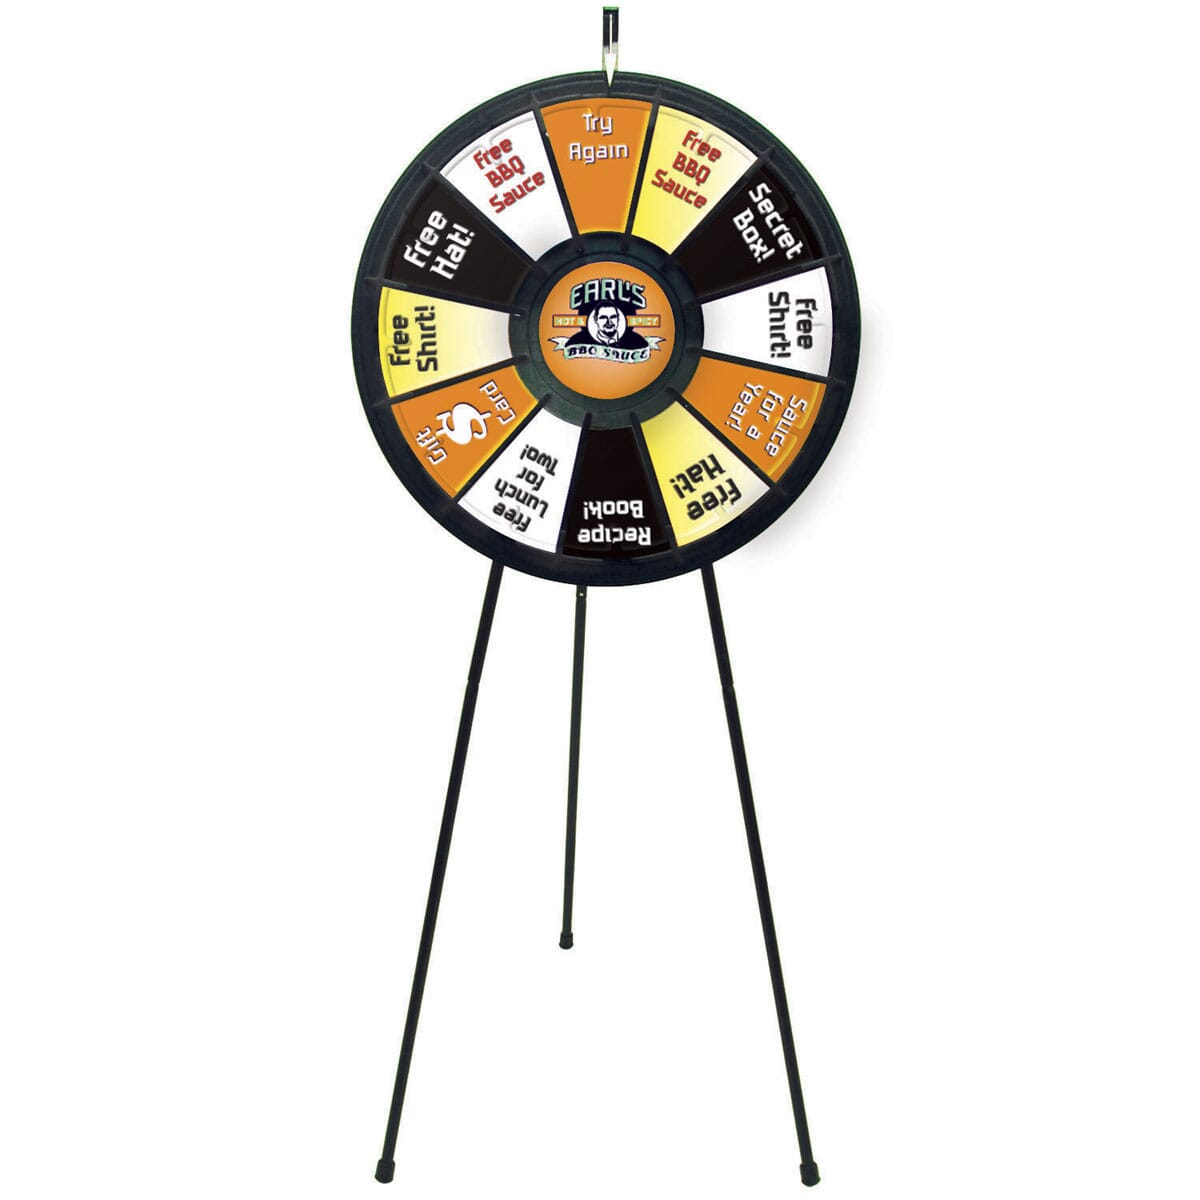 Prize wheel mounted on tripod stand with black and white logo in center